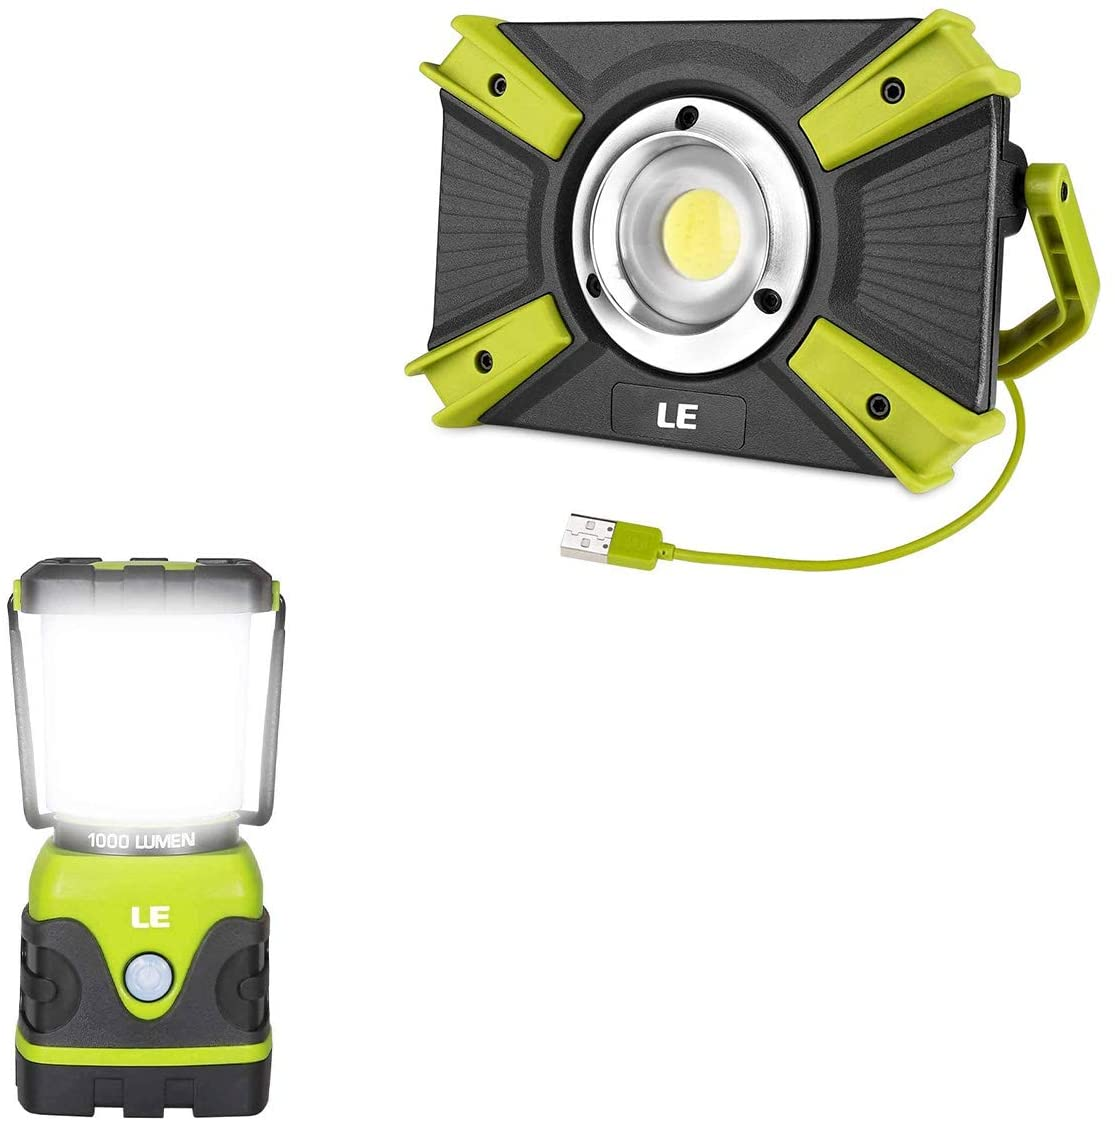 LE Bundle-2 Items: Battery Powered 1000 lumens Camping Lantern & 1500 lumens Rechargeable Work Light with Power Bank, Portable Indoor Outdoor Lantern